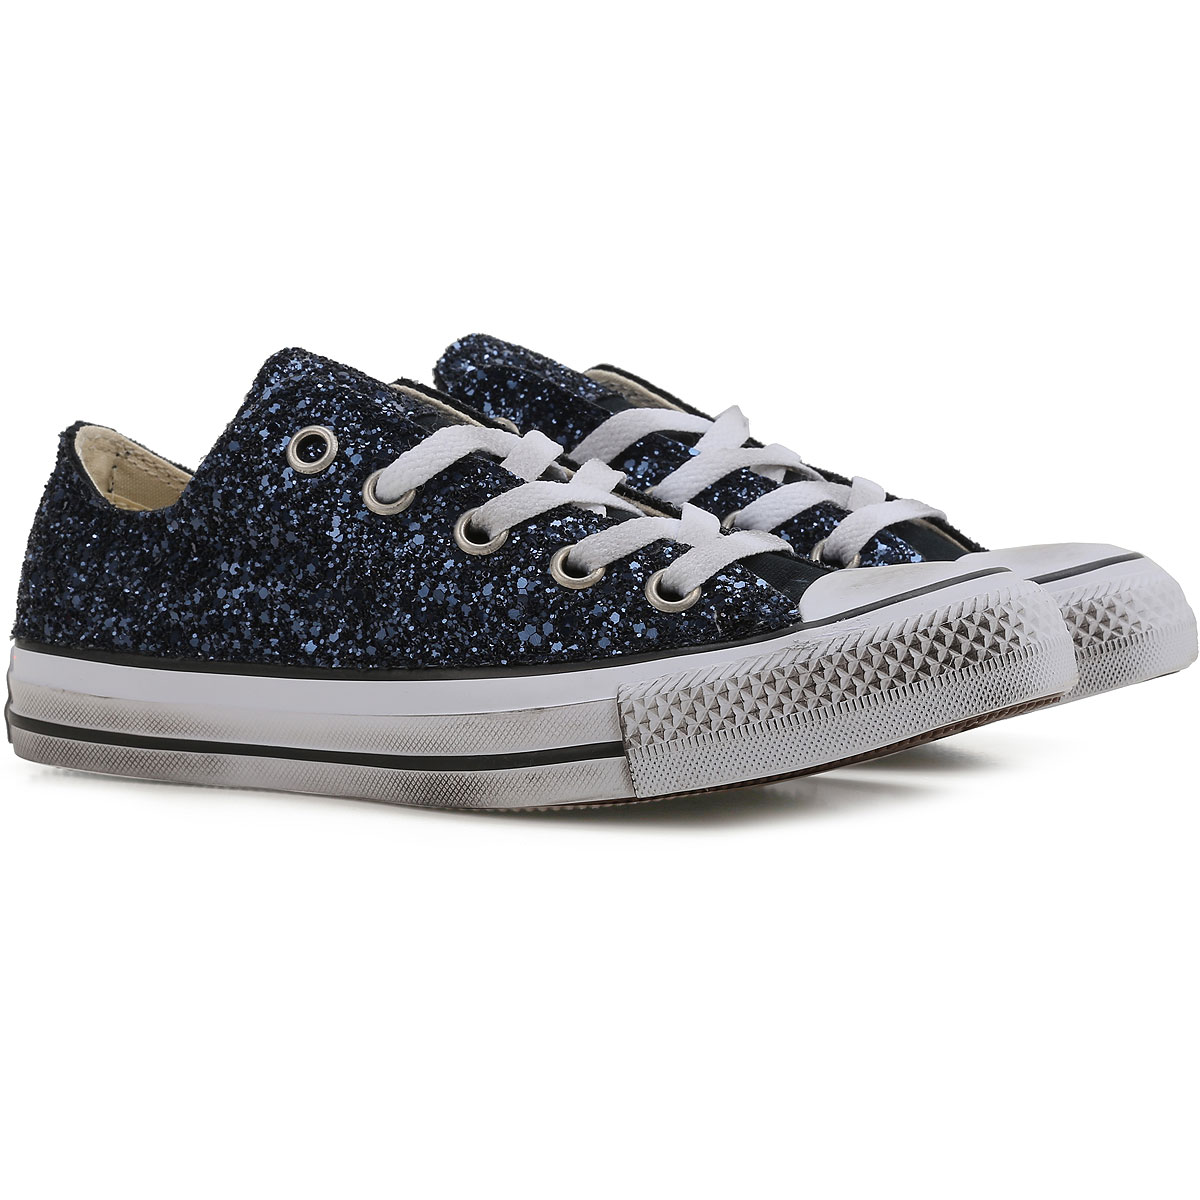 Converse Sneakers for Women On Sale Limited Edition SE - GOOFASH